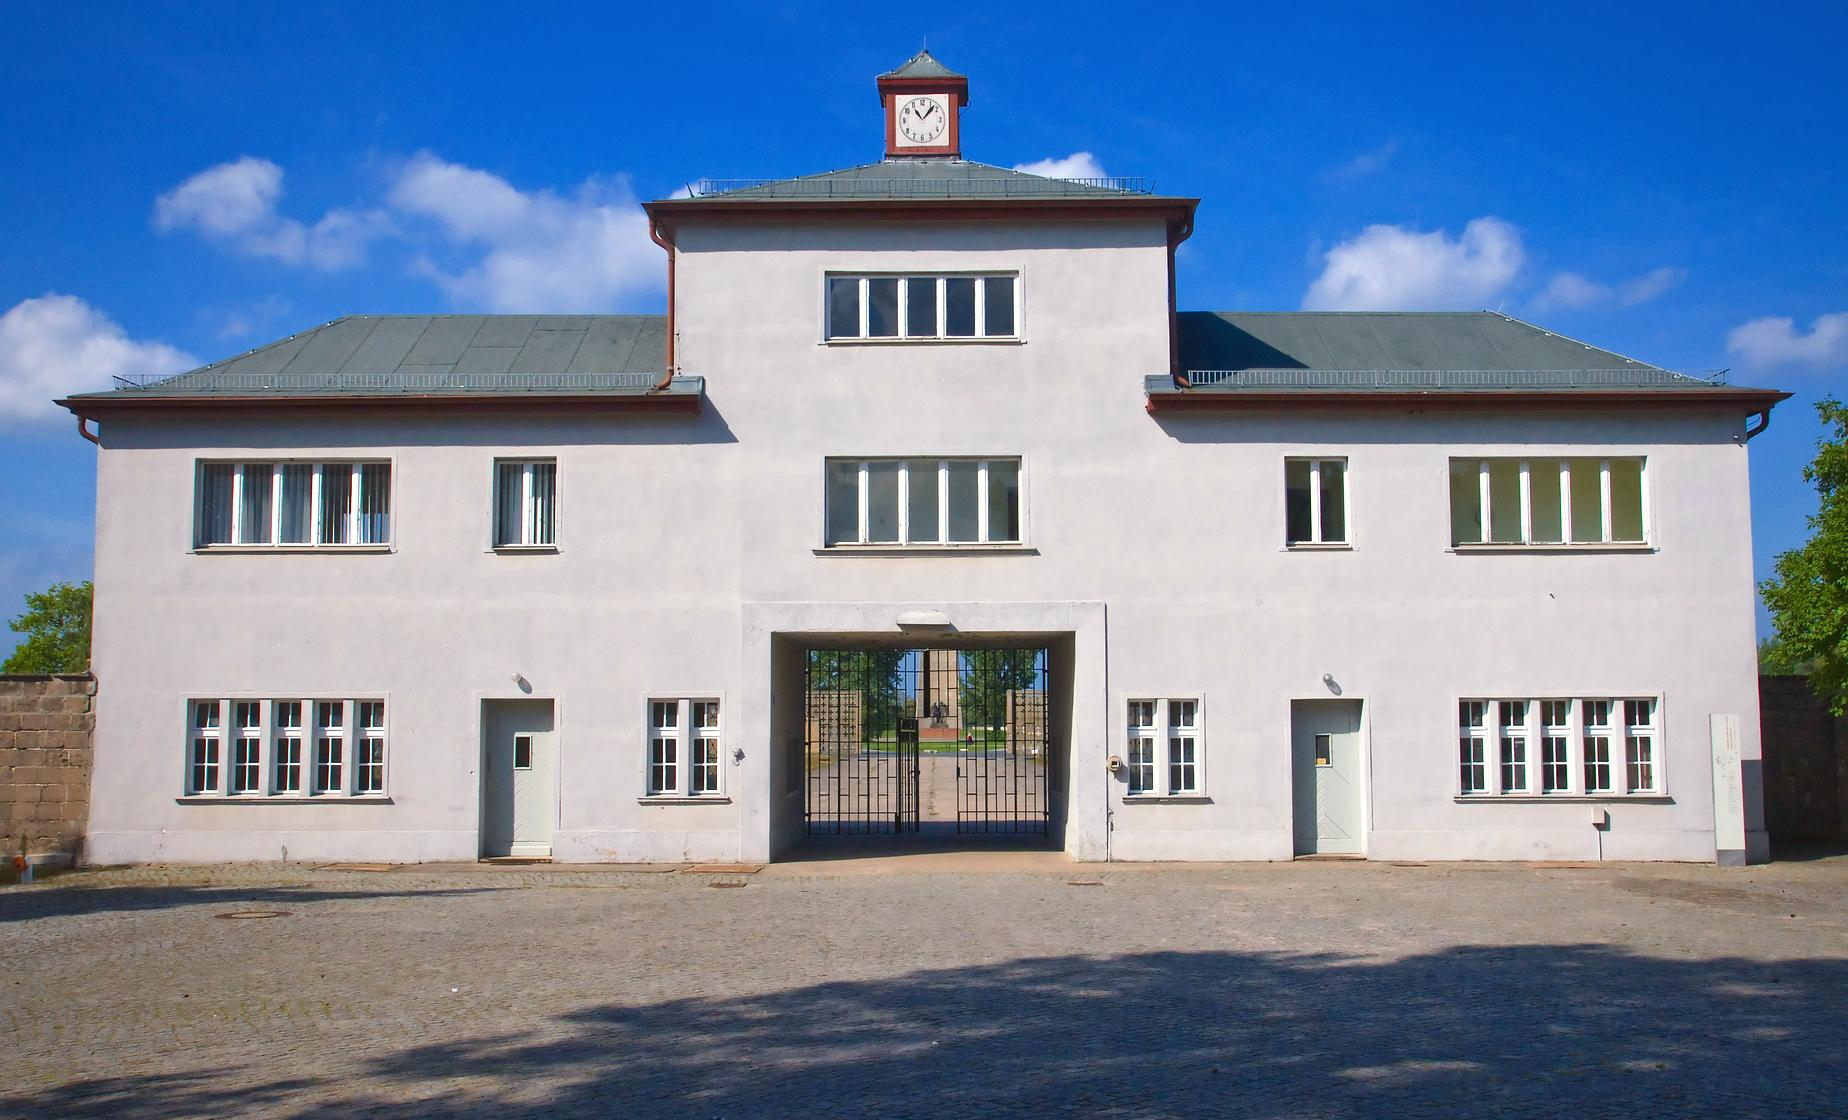 Berlin and Sachsenhausen Concentration Camp